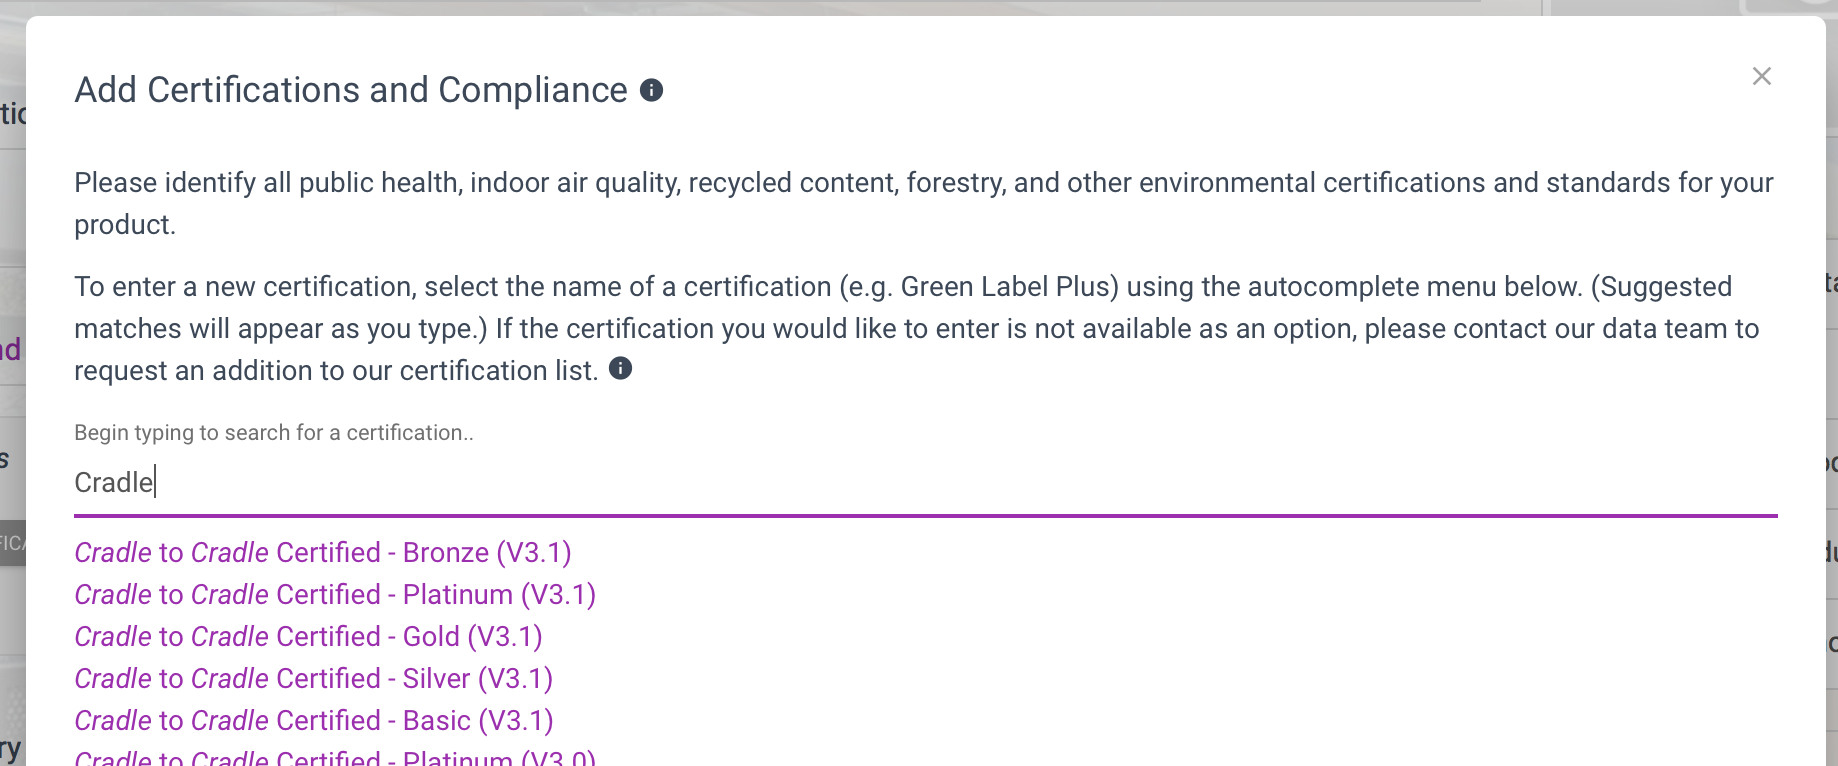 12d78b5e55c3 If you do not see your certification available, it may not yet be entered  in our certifications library. To request a new health or environmental ...